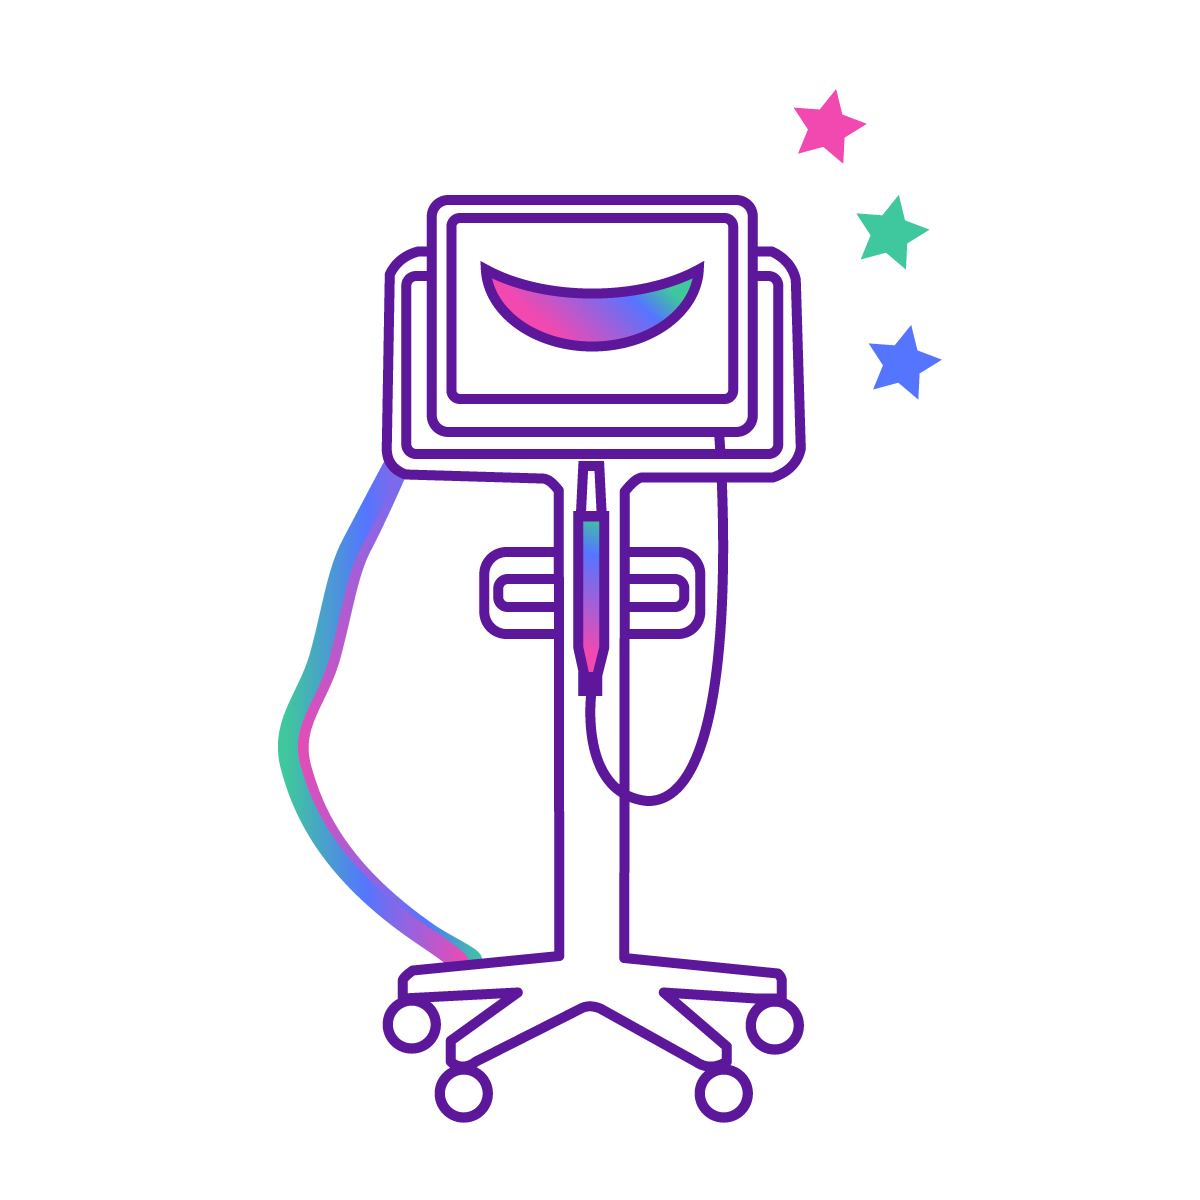 Medical stand icon